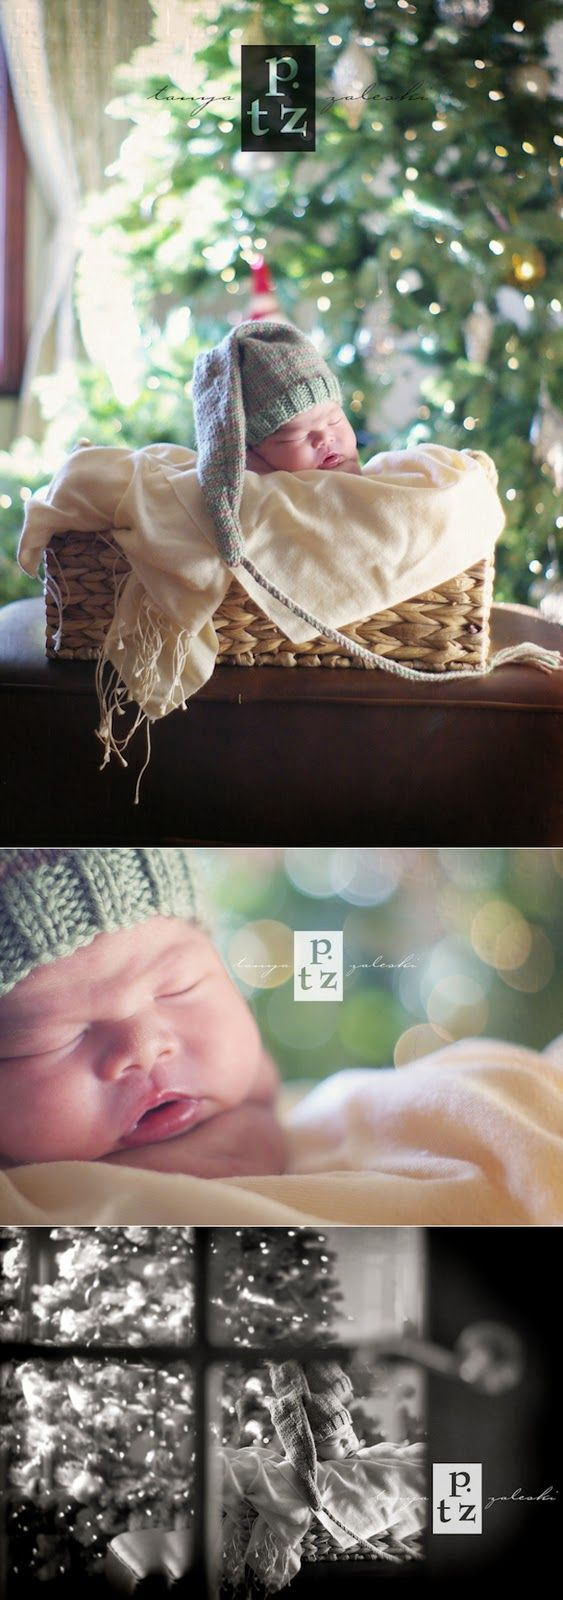 newborn photo session for Christmas...ya never know, he could be a Christmas baby.